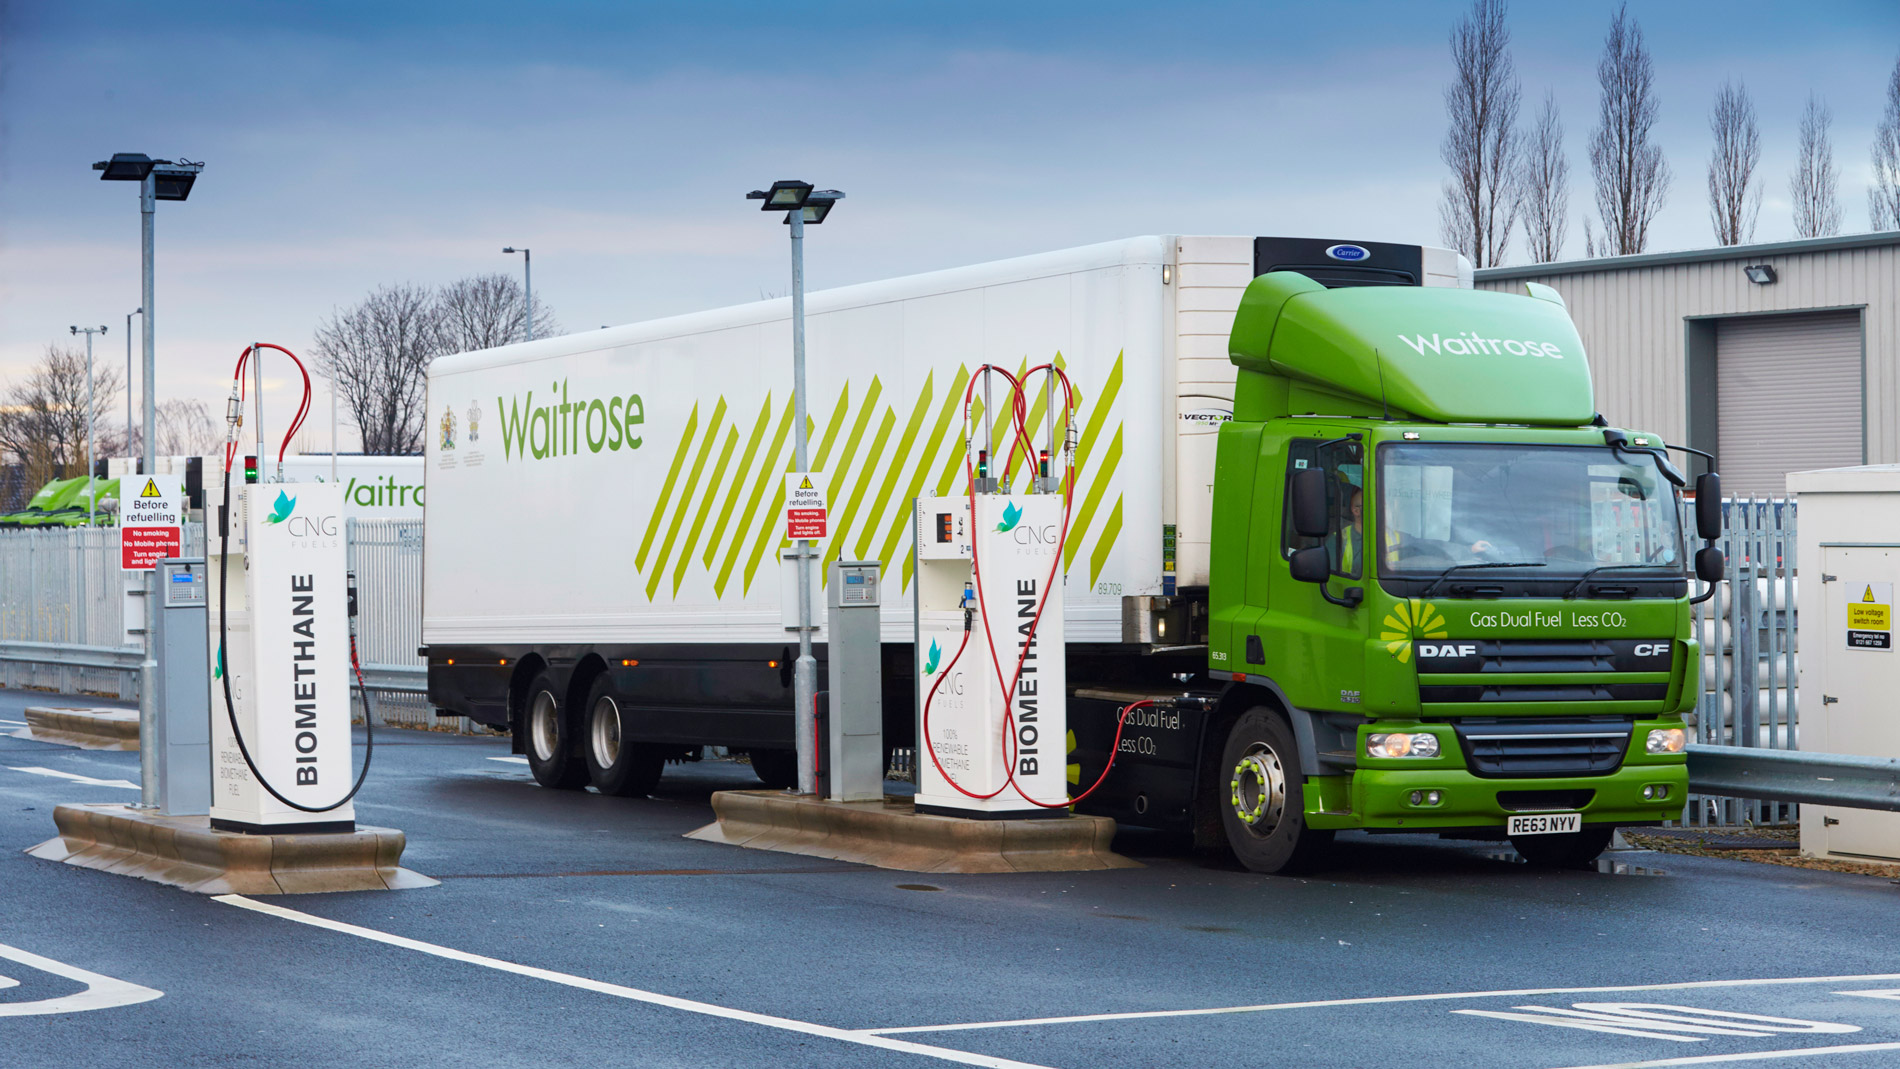 Waitrose Delivery Trucks Biomethane